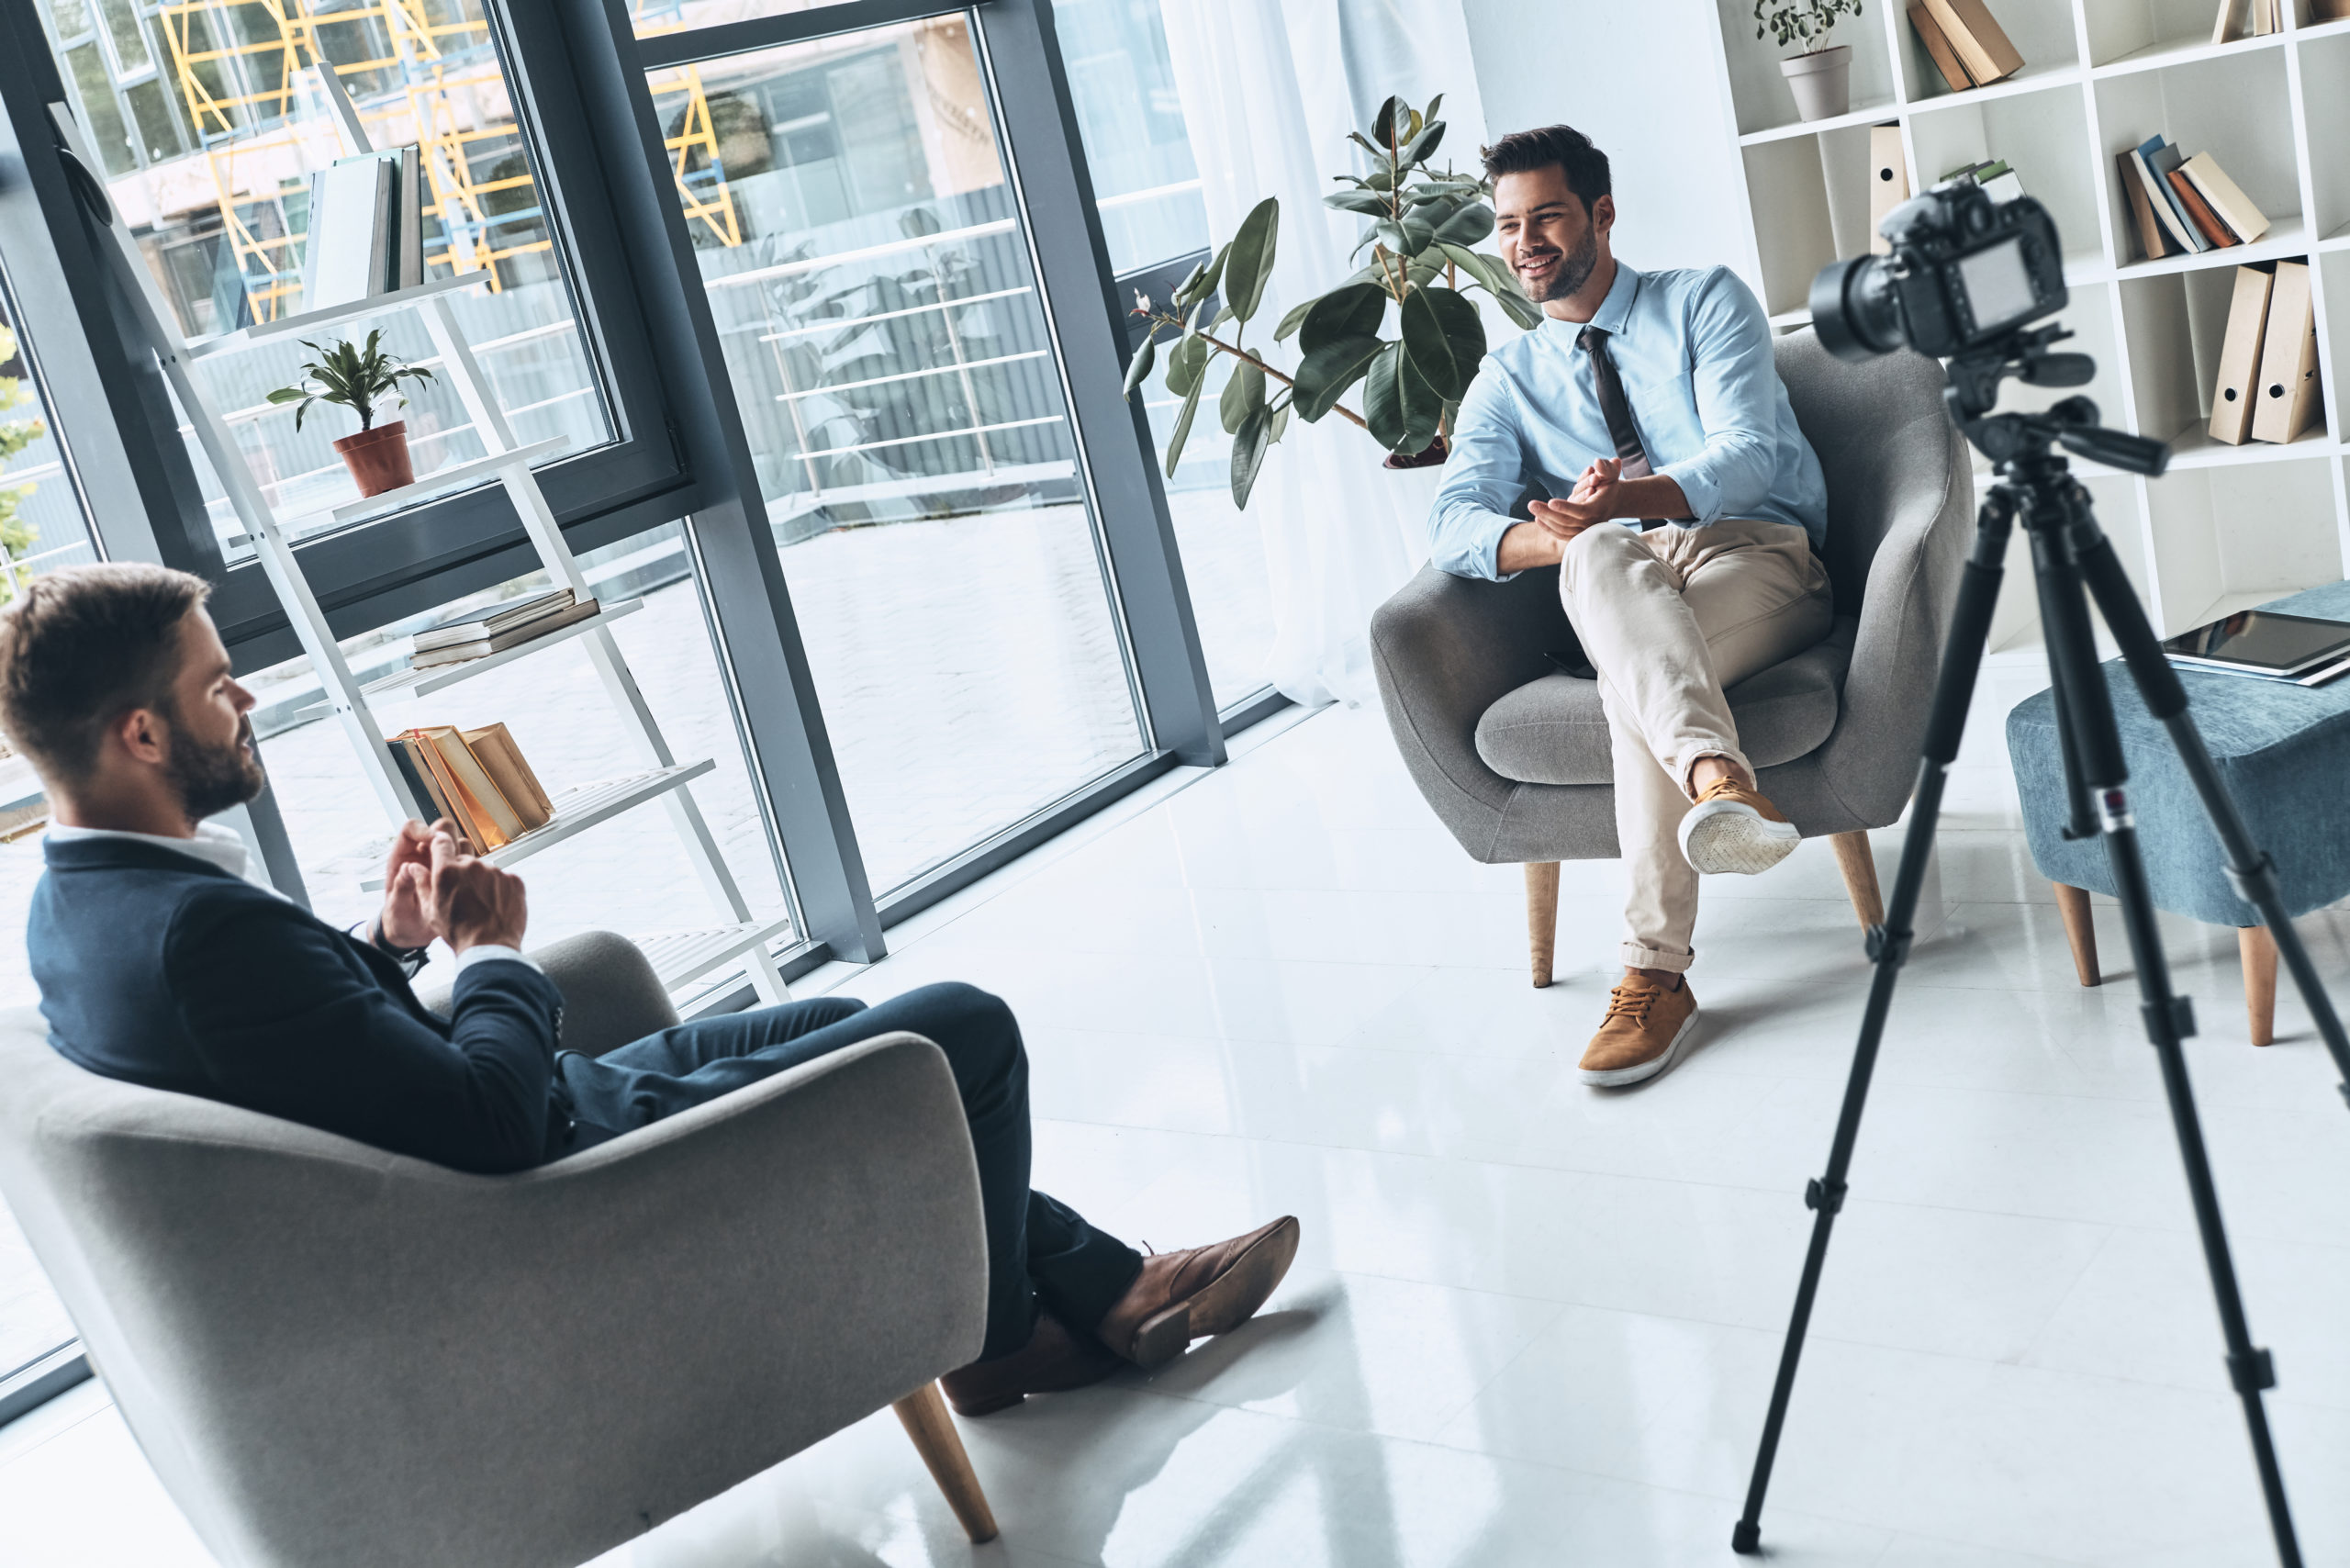 real estate video agent interviews local business owner